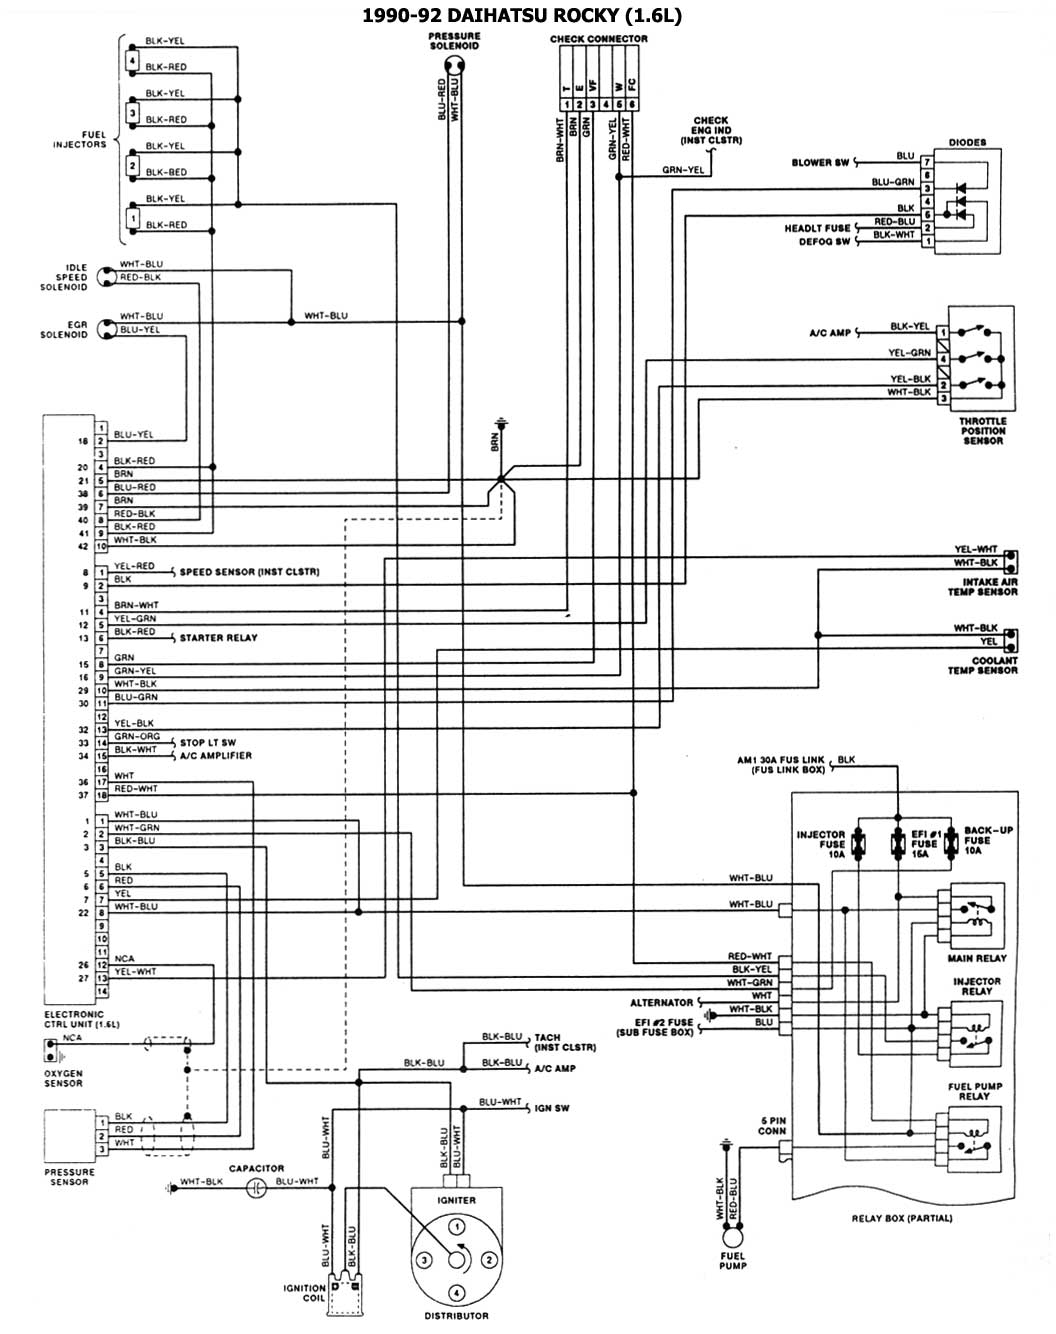 1991 Daihatsu Fuse Box Schematic Diagram